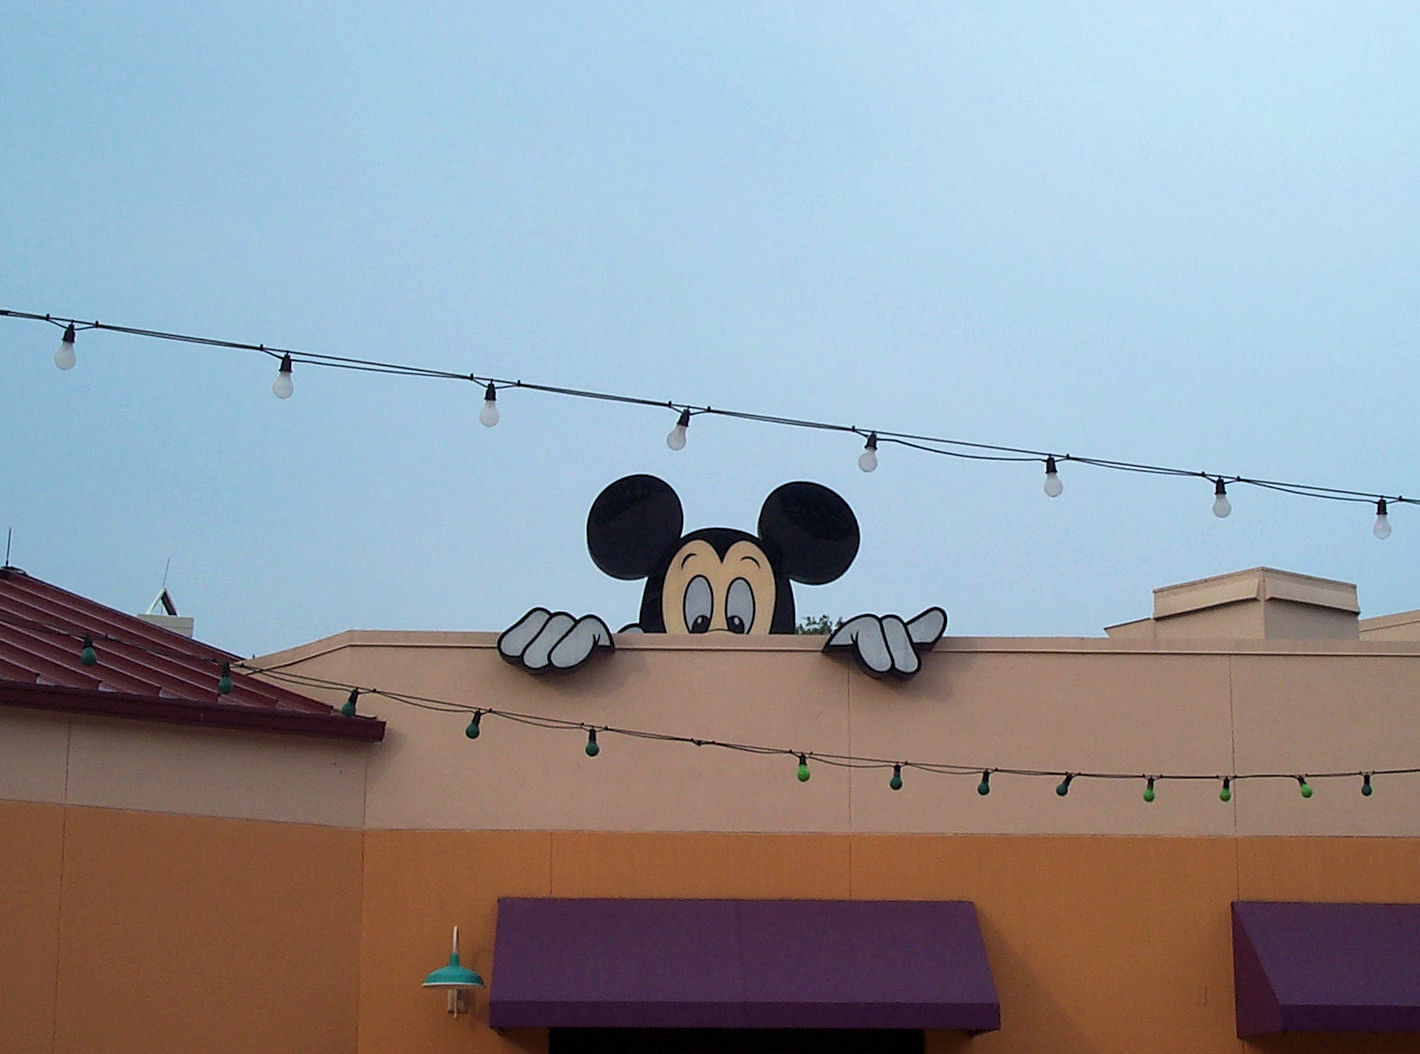 Mickey peeking over the wall at Pleasure Island, Downtown Disney, Disney World.